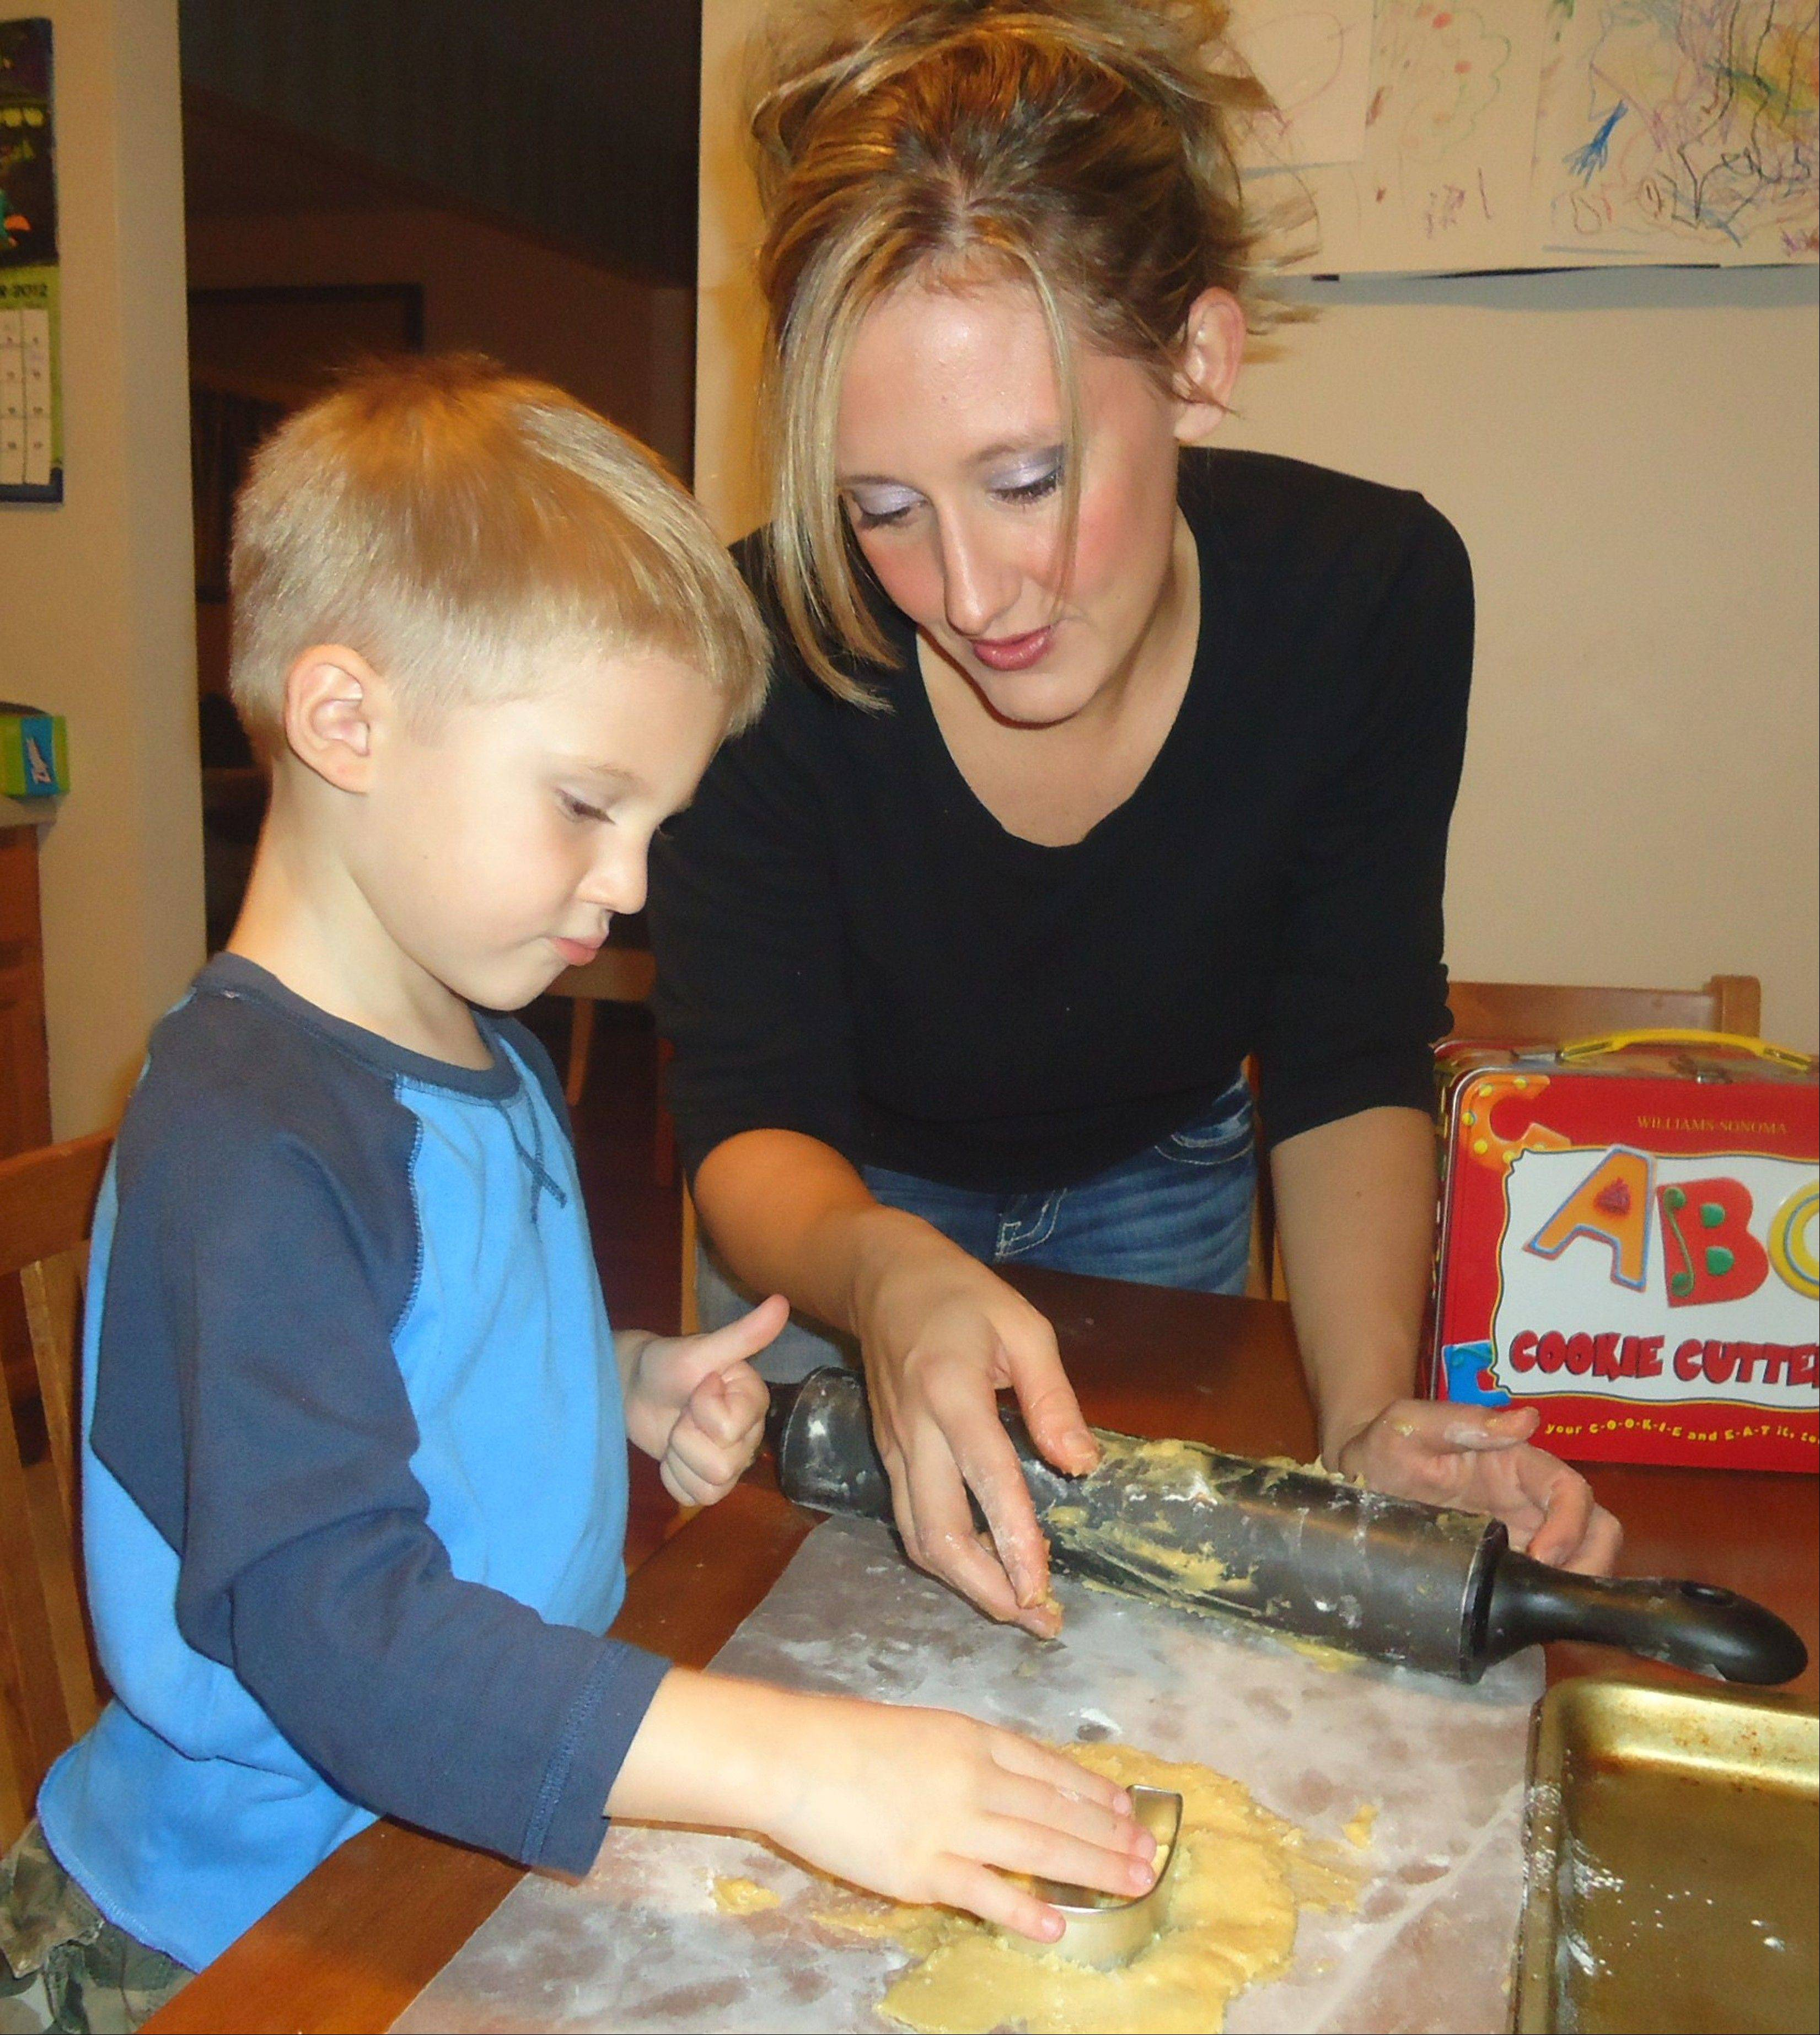 Volunteering and giving to others has been a way of life for Jennifer Ubert of Palatine, and she's passing the tradition along to her son, Ryan, 3. Here, they make cookies to benefit Relay For Life.